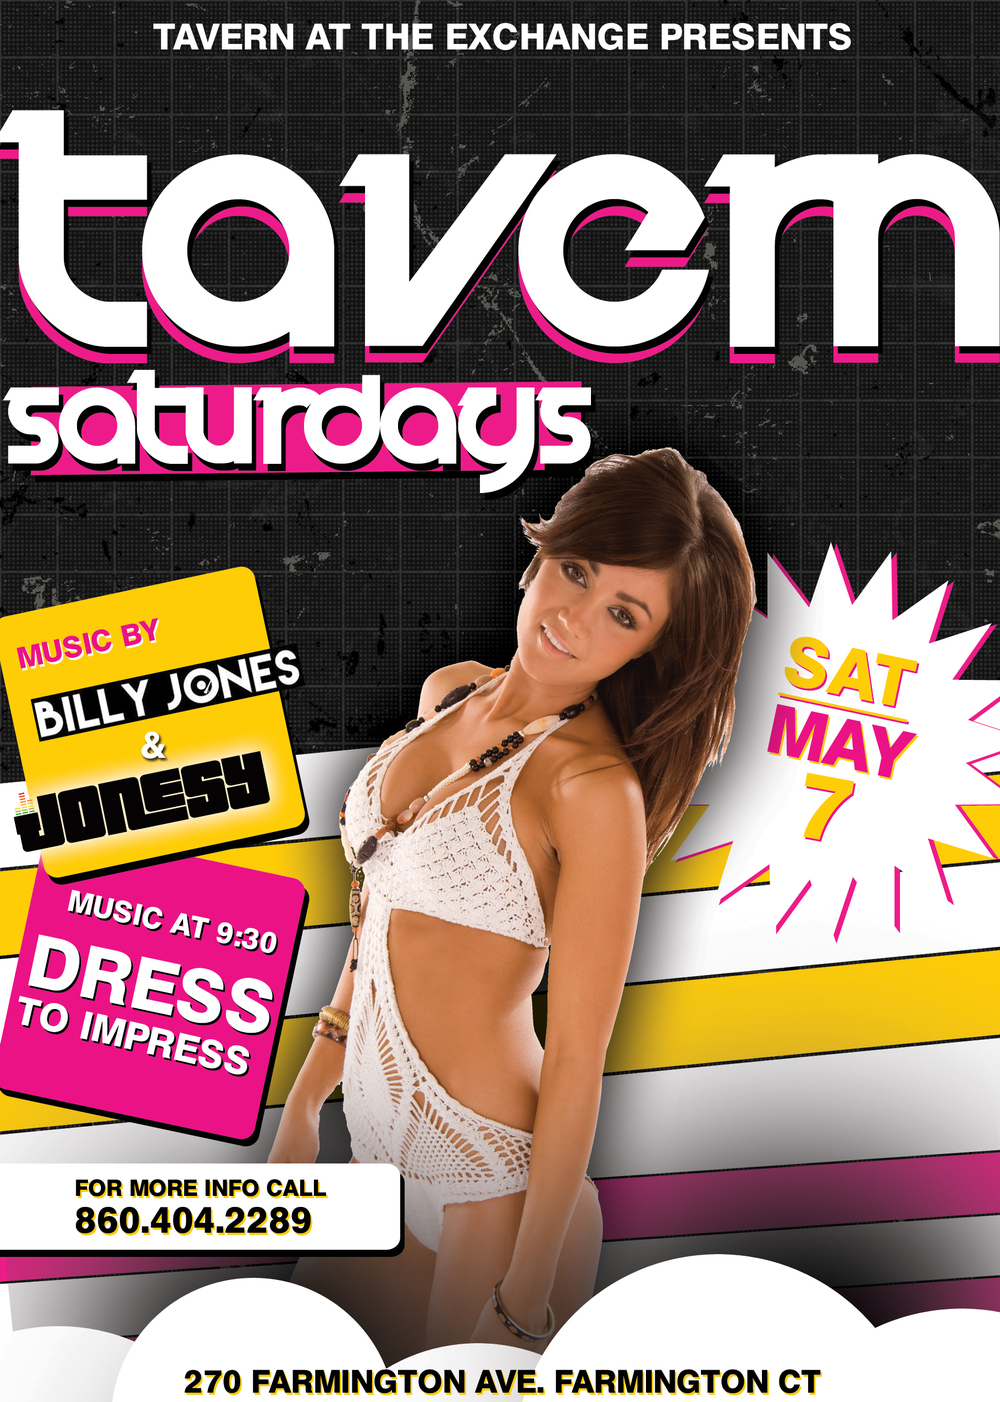 SATURDAY, MAY 7TH JOIN US AT TAVERN AT THE EXCHANGE IN FARMINGTON, CT FOR MUSIC BY BILLY JONES + YOURS TRULY ALL NIGHT LONG!  HOSTED BY ALBY & ERIC SAVAGE, ITS THE BIGGEST SATURDAY NIGHT PARTY IN THE WHOLE STATE OF CT!  DRESS TO IMPRESS & ARRIVE EARLY TO AVOID A LINE.  SEE YOU ALL THERE!